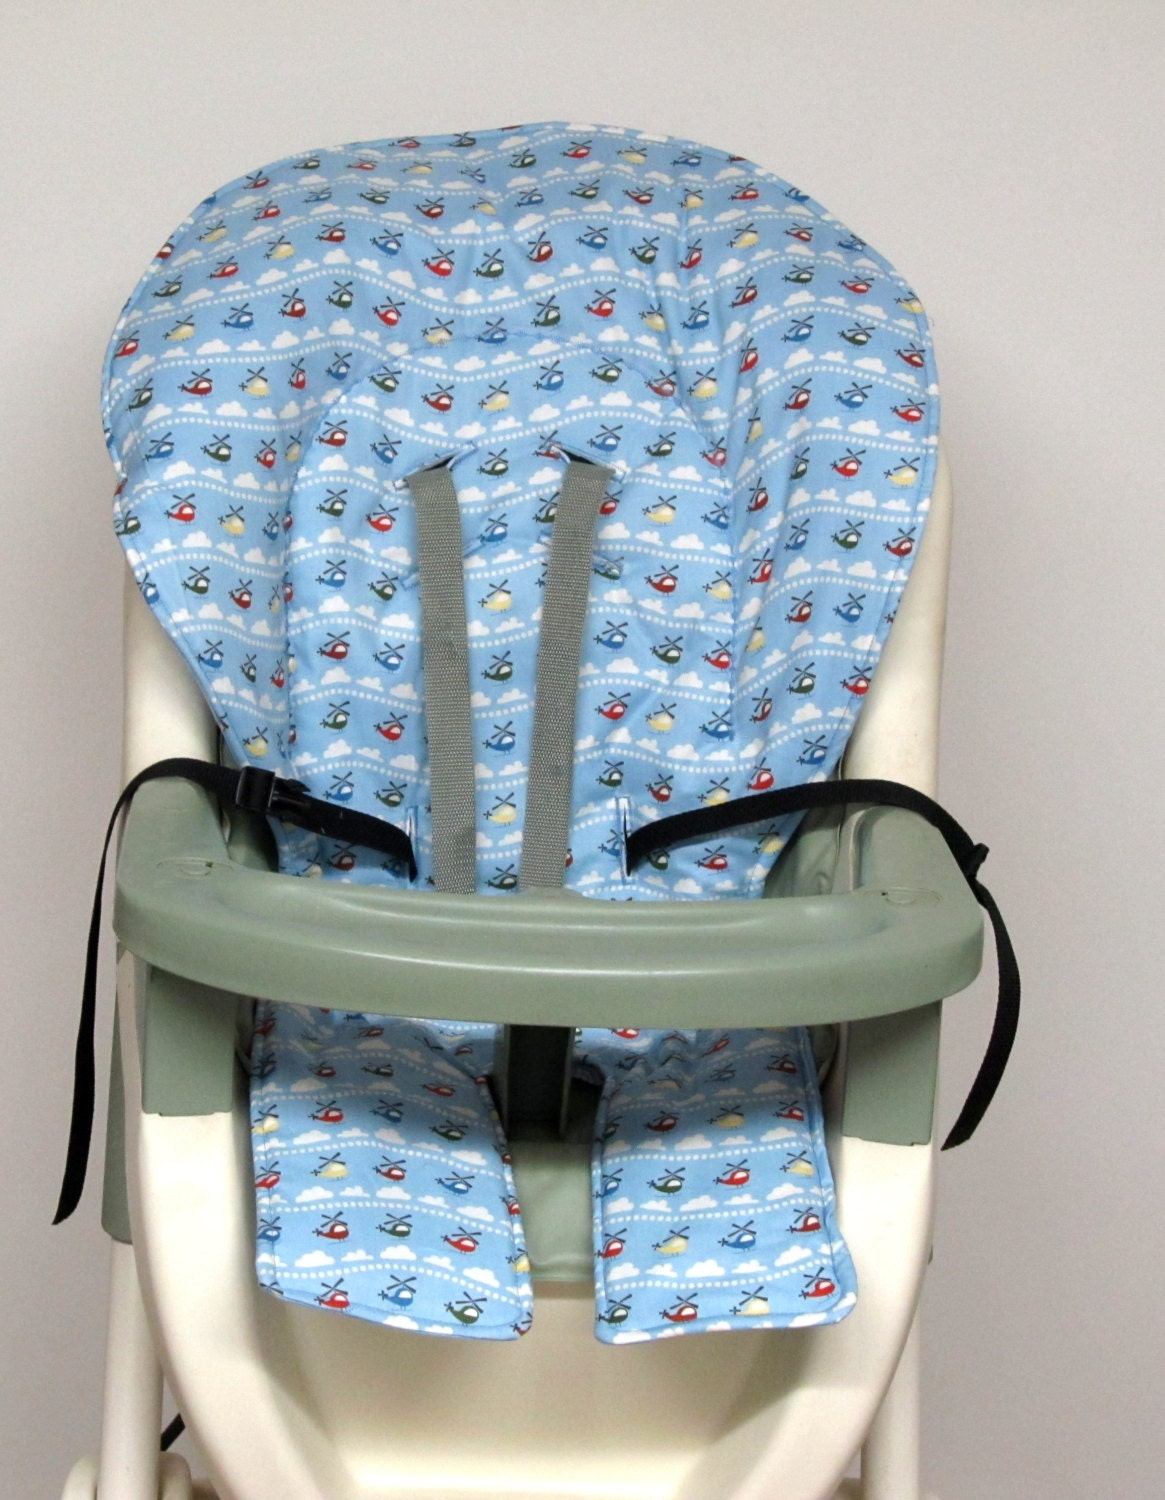 Graco High Chair Cover Pad Replacement Helicopters On Blue